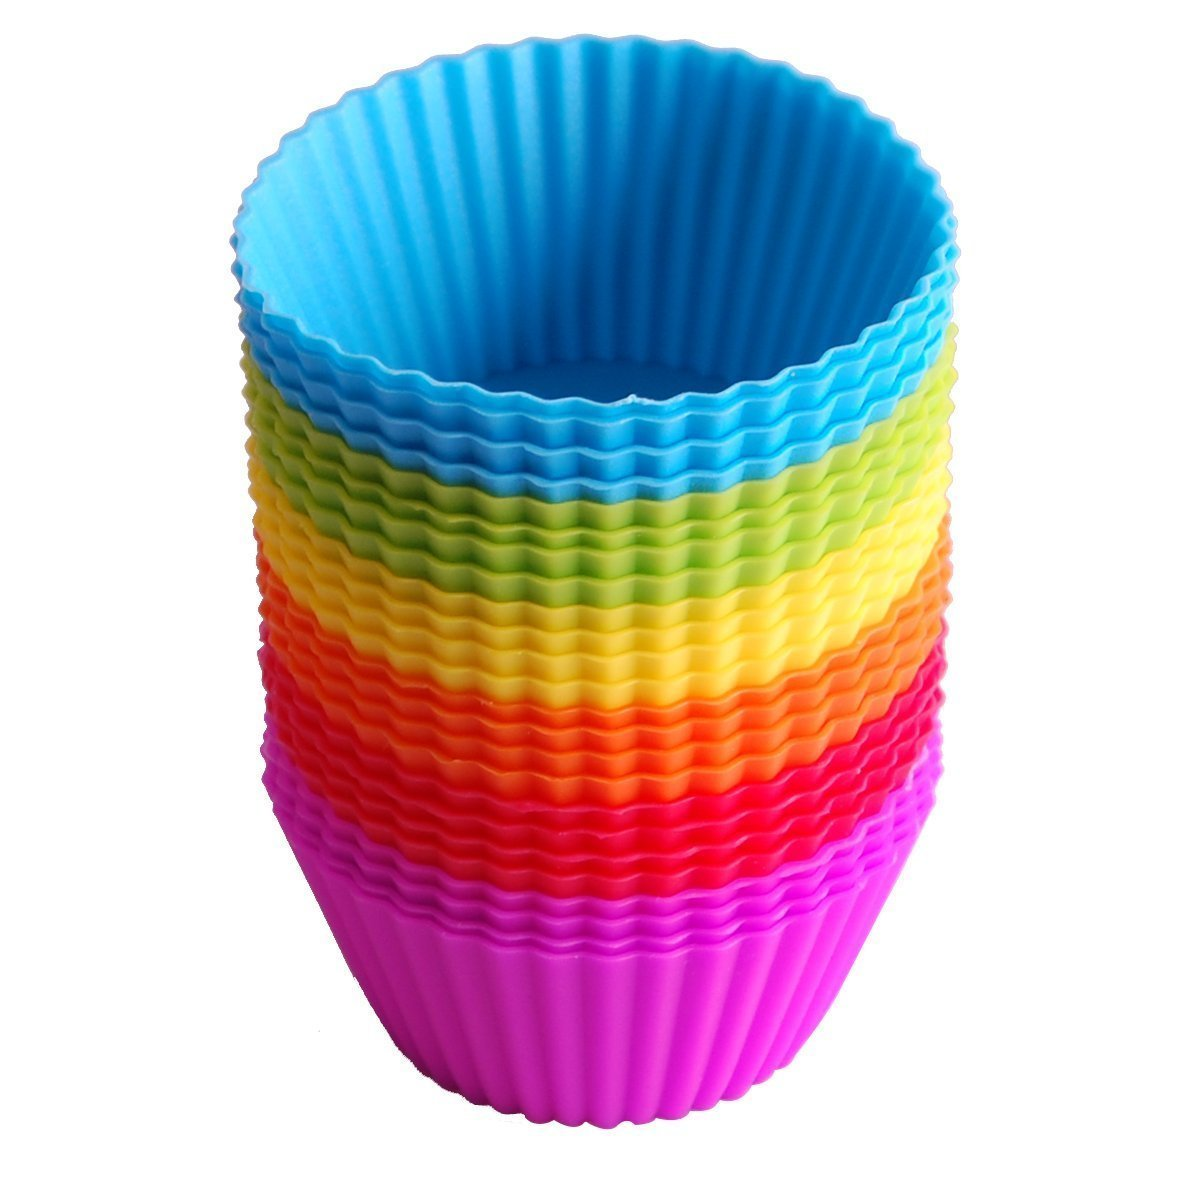 Cupcake Molds IdealHouse 24 Pack Silicone Reusable Baking Cases Muffin Molds Moulds Rainbow Cups for Cakes Ice Creams Puddings